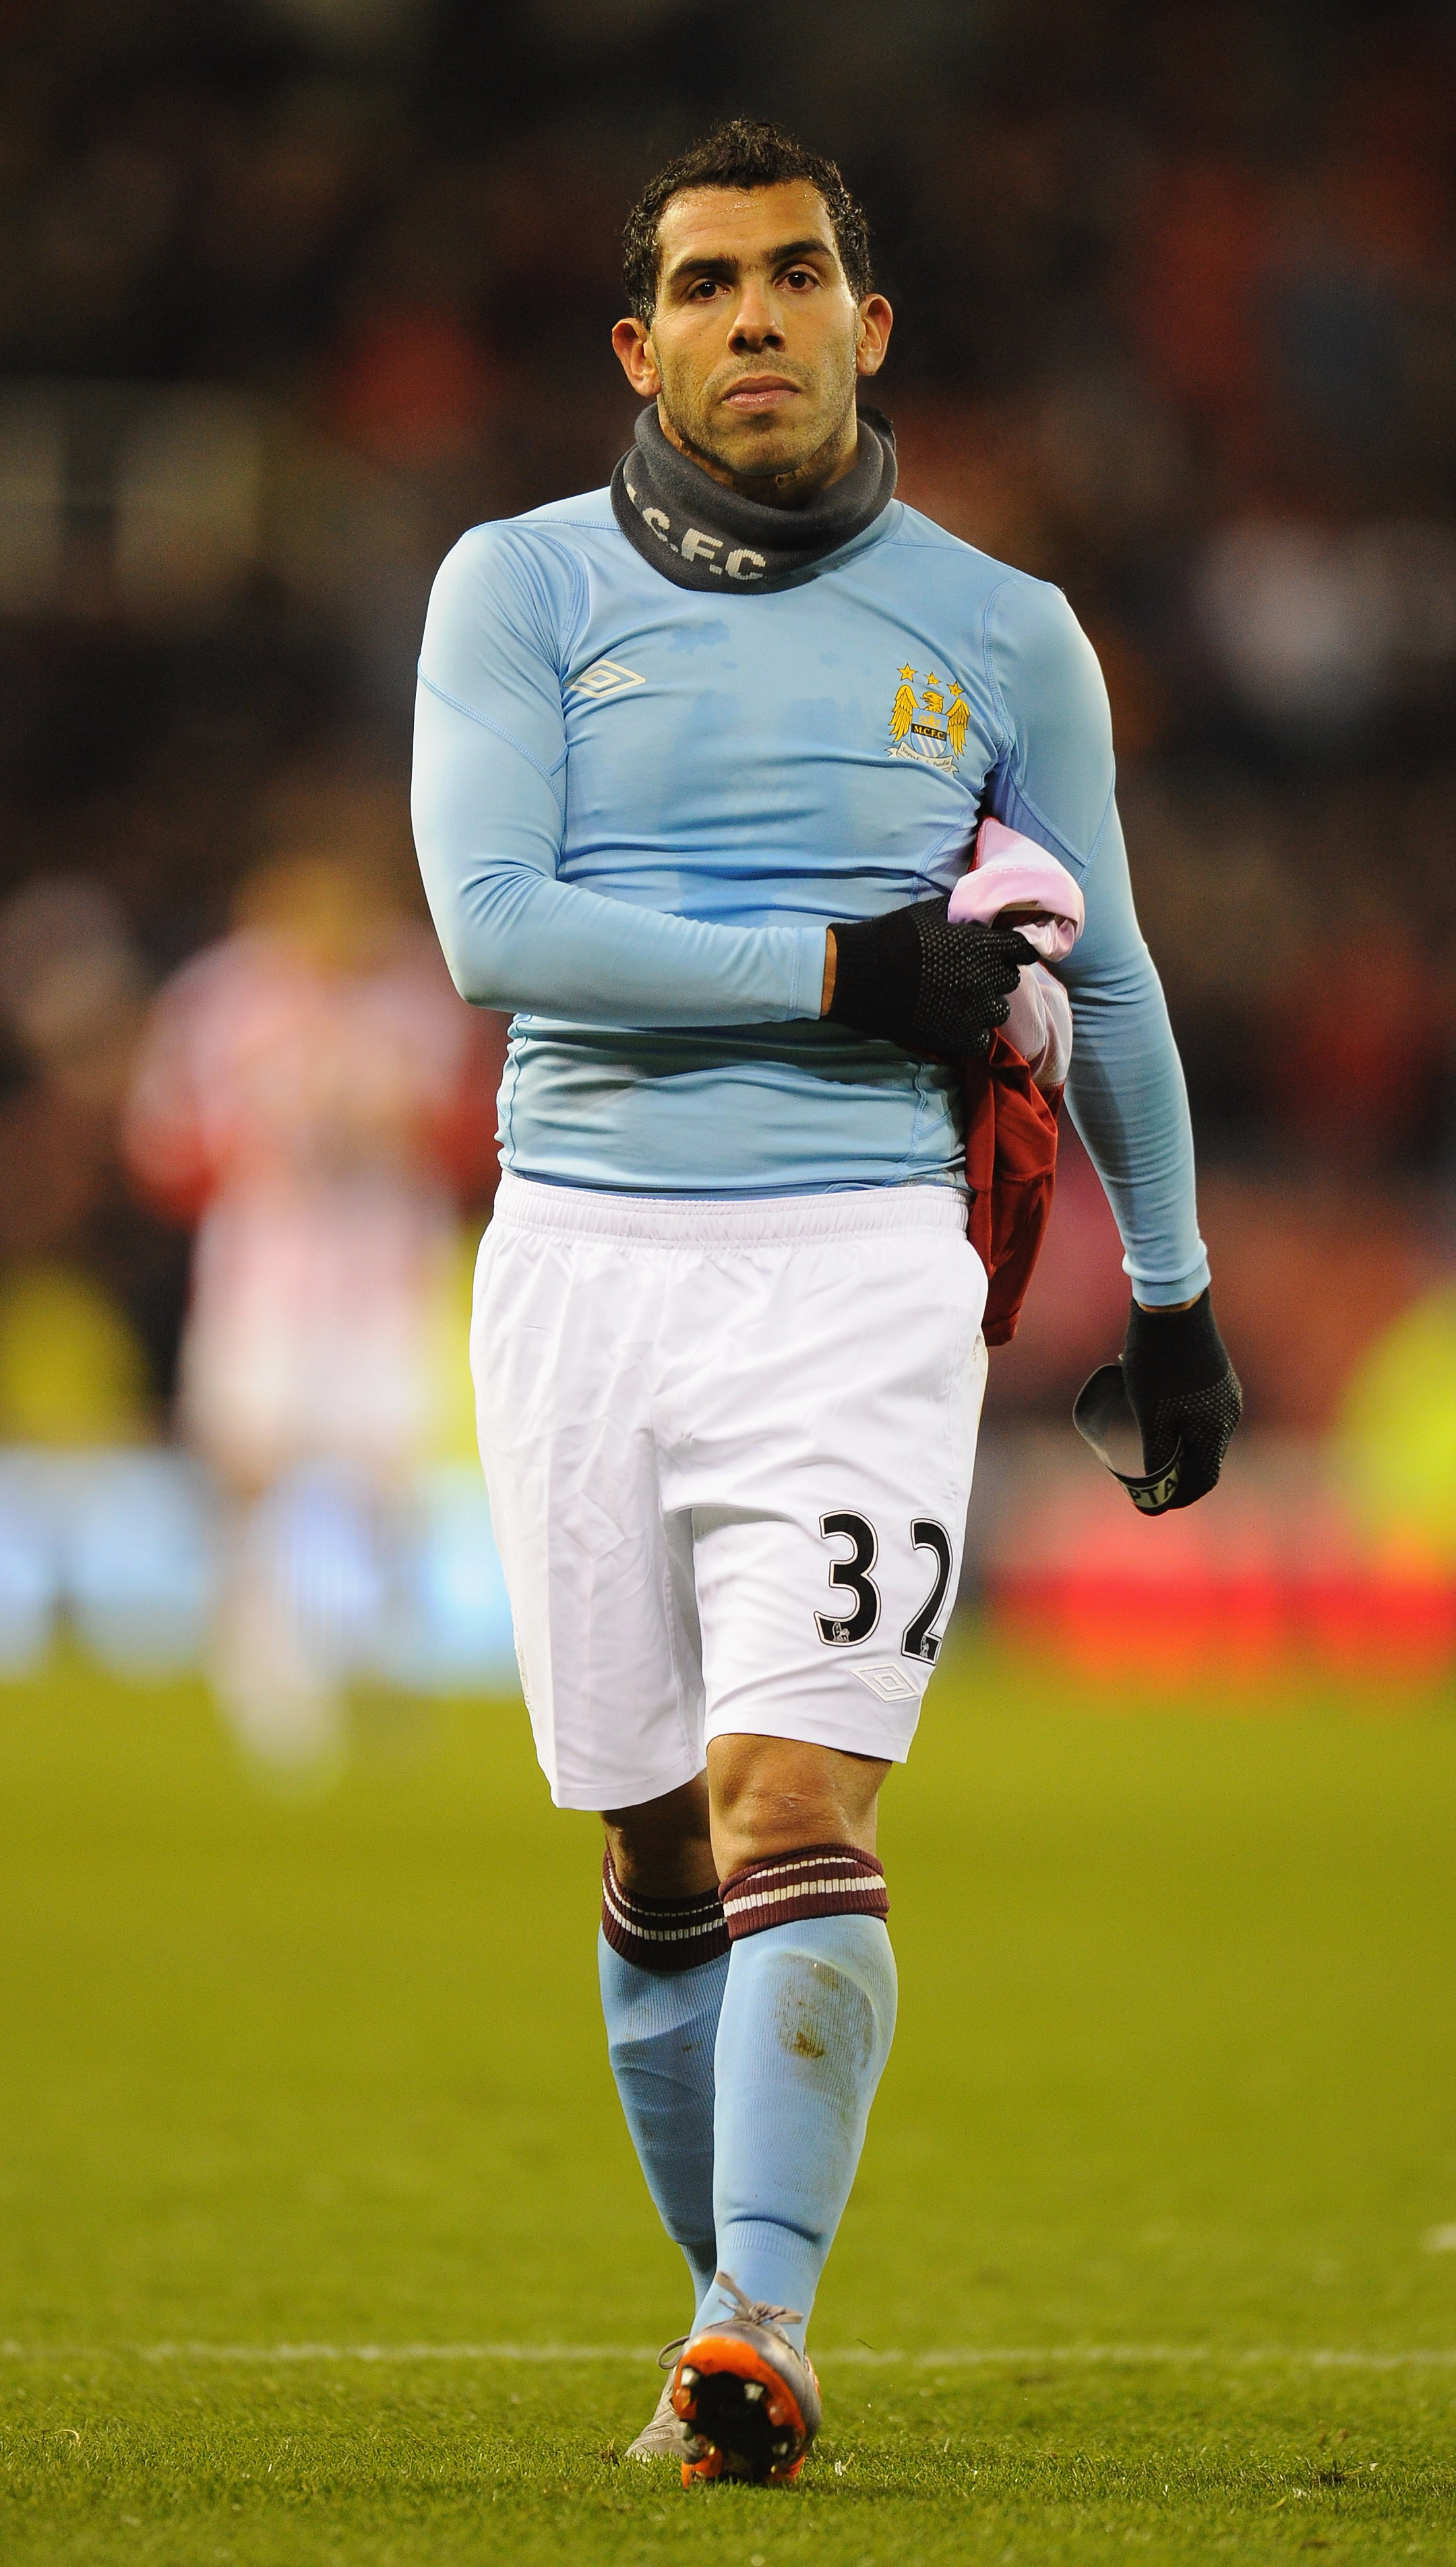 STOKE ON TRENT, ENGLAND - NOVEMBER 27:  Carlos Tevez of Manchester City walks off at the end of the Barclays Premier League match between Stoke City and Manchester City at Britannia Stadium on November 27, 2010 in Stoke on Trent, England.  (Photo by Clive